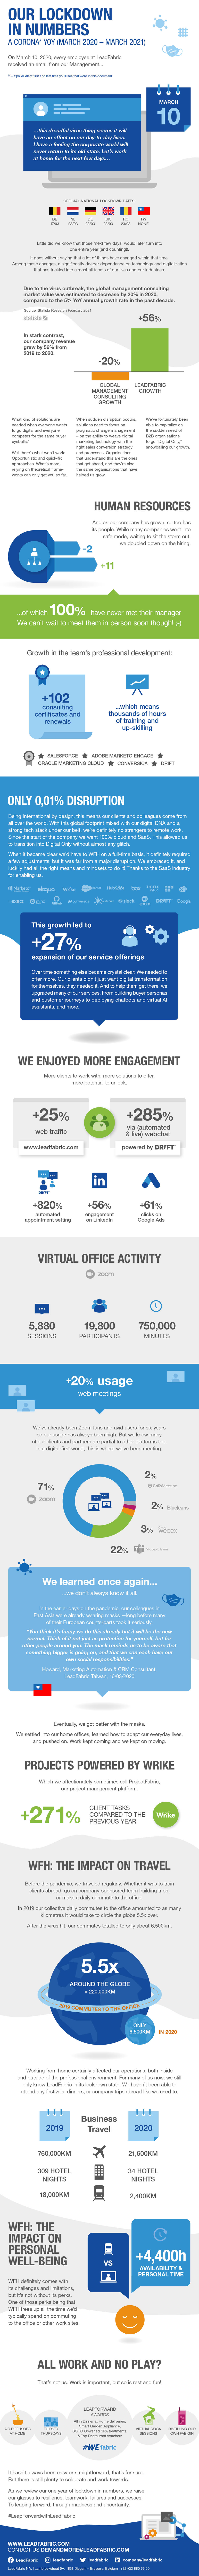 LeadFabric's Lockdown in Numbers Infographic